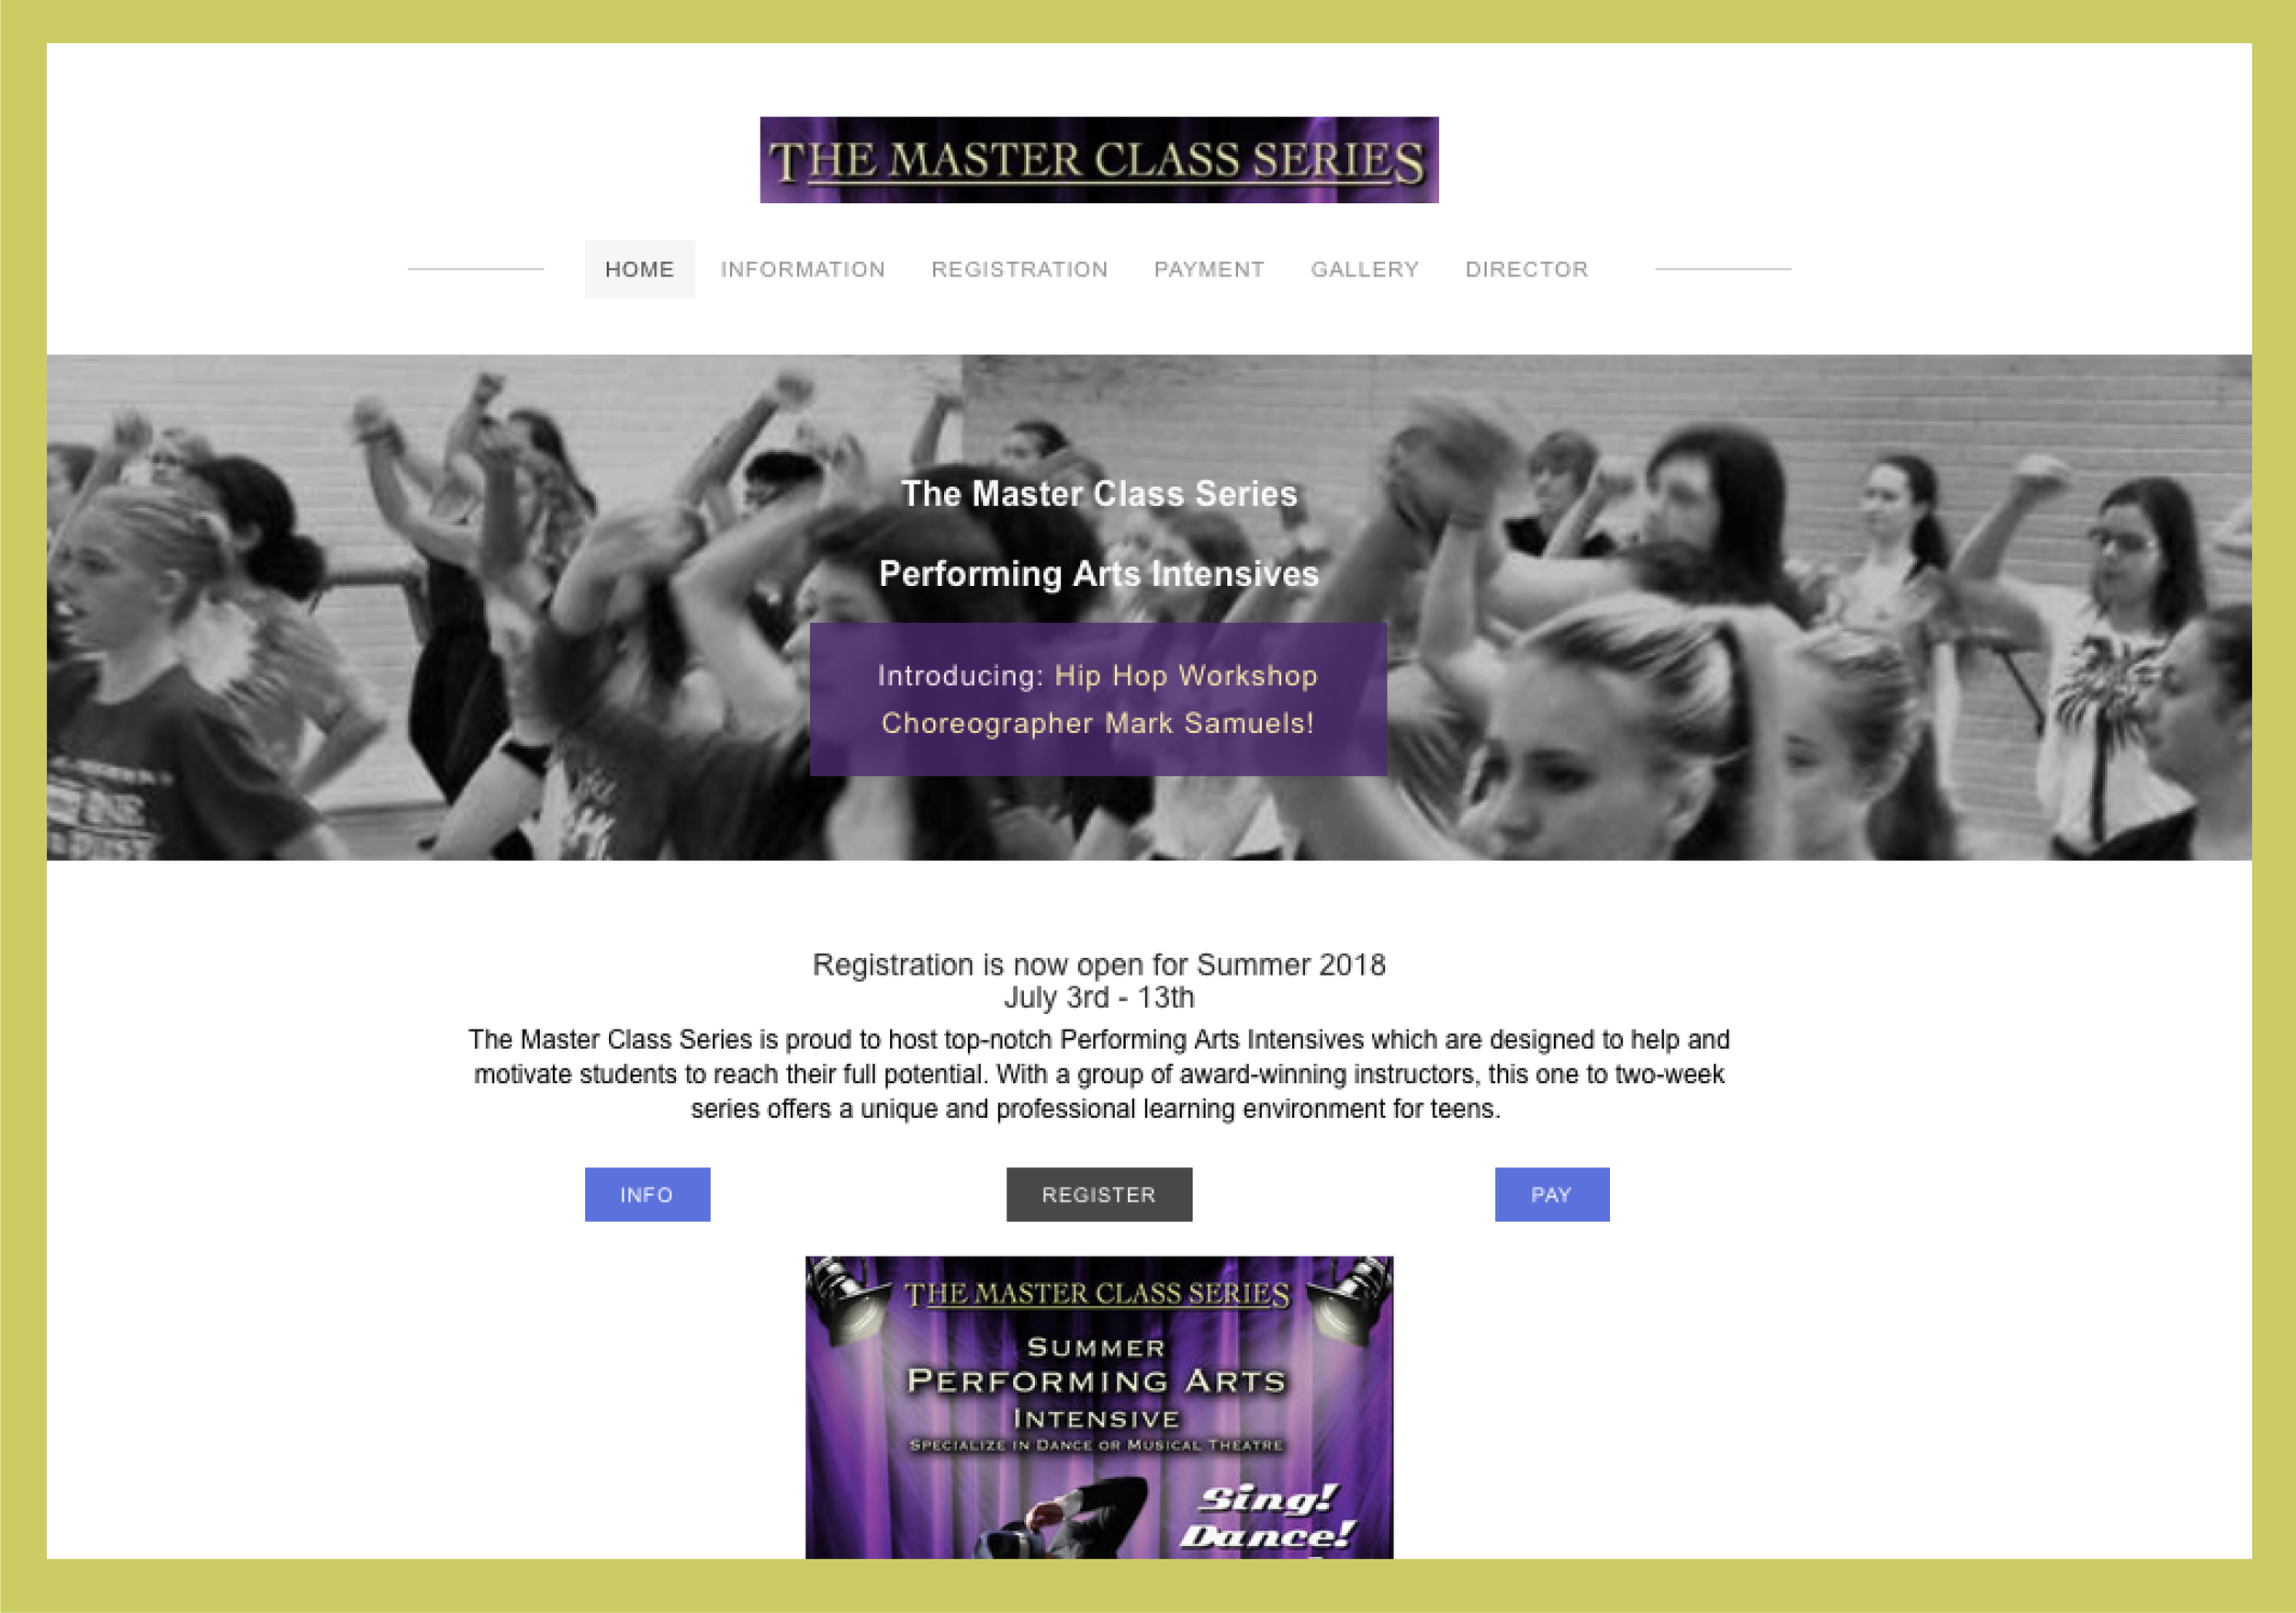 Website design - Master Class Intensives website